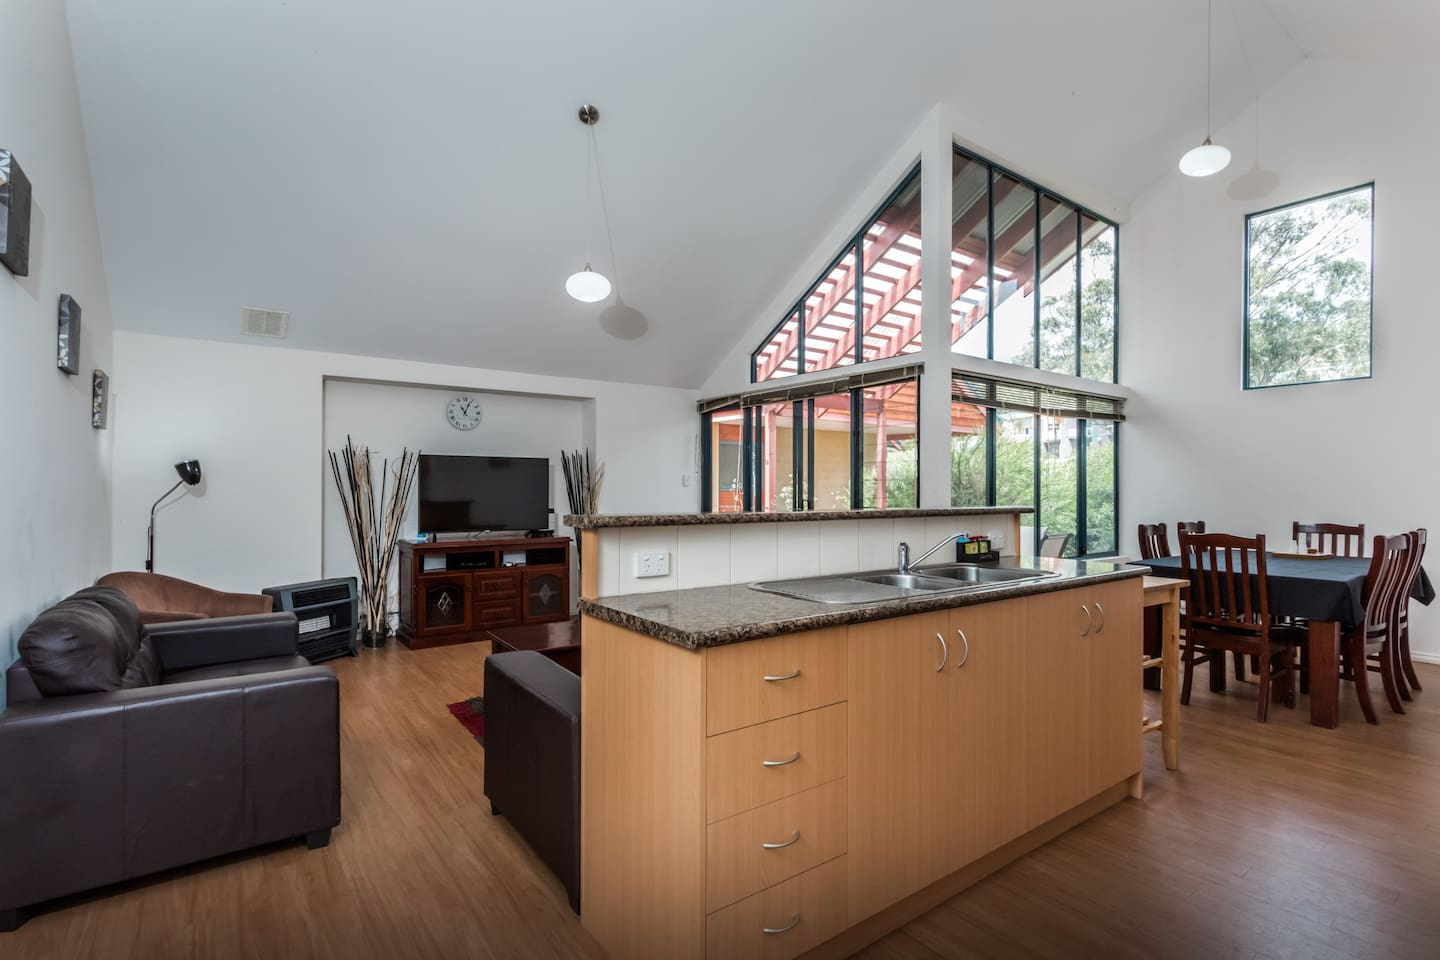 Open plan living and dining space, including: • Fully equipped kitchen; • Alfresco (outside) and inside dining;  • Flat screen TV;  • Sofa seating, comfortably seats 6; • Large windows, high ceilings, beautiful natural light; • Native garden views.